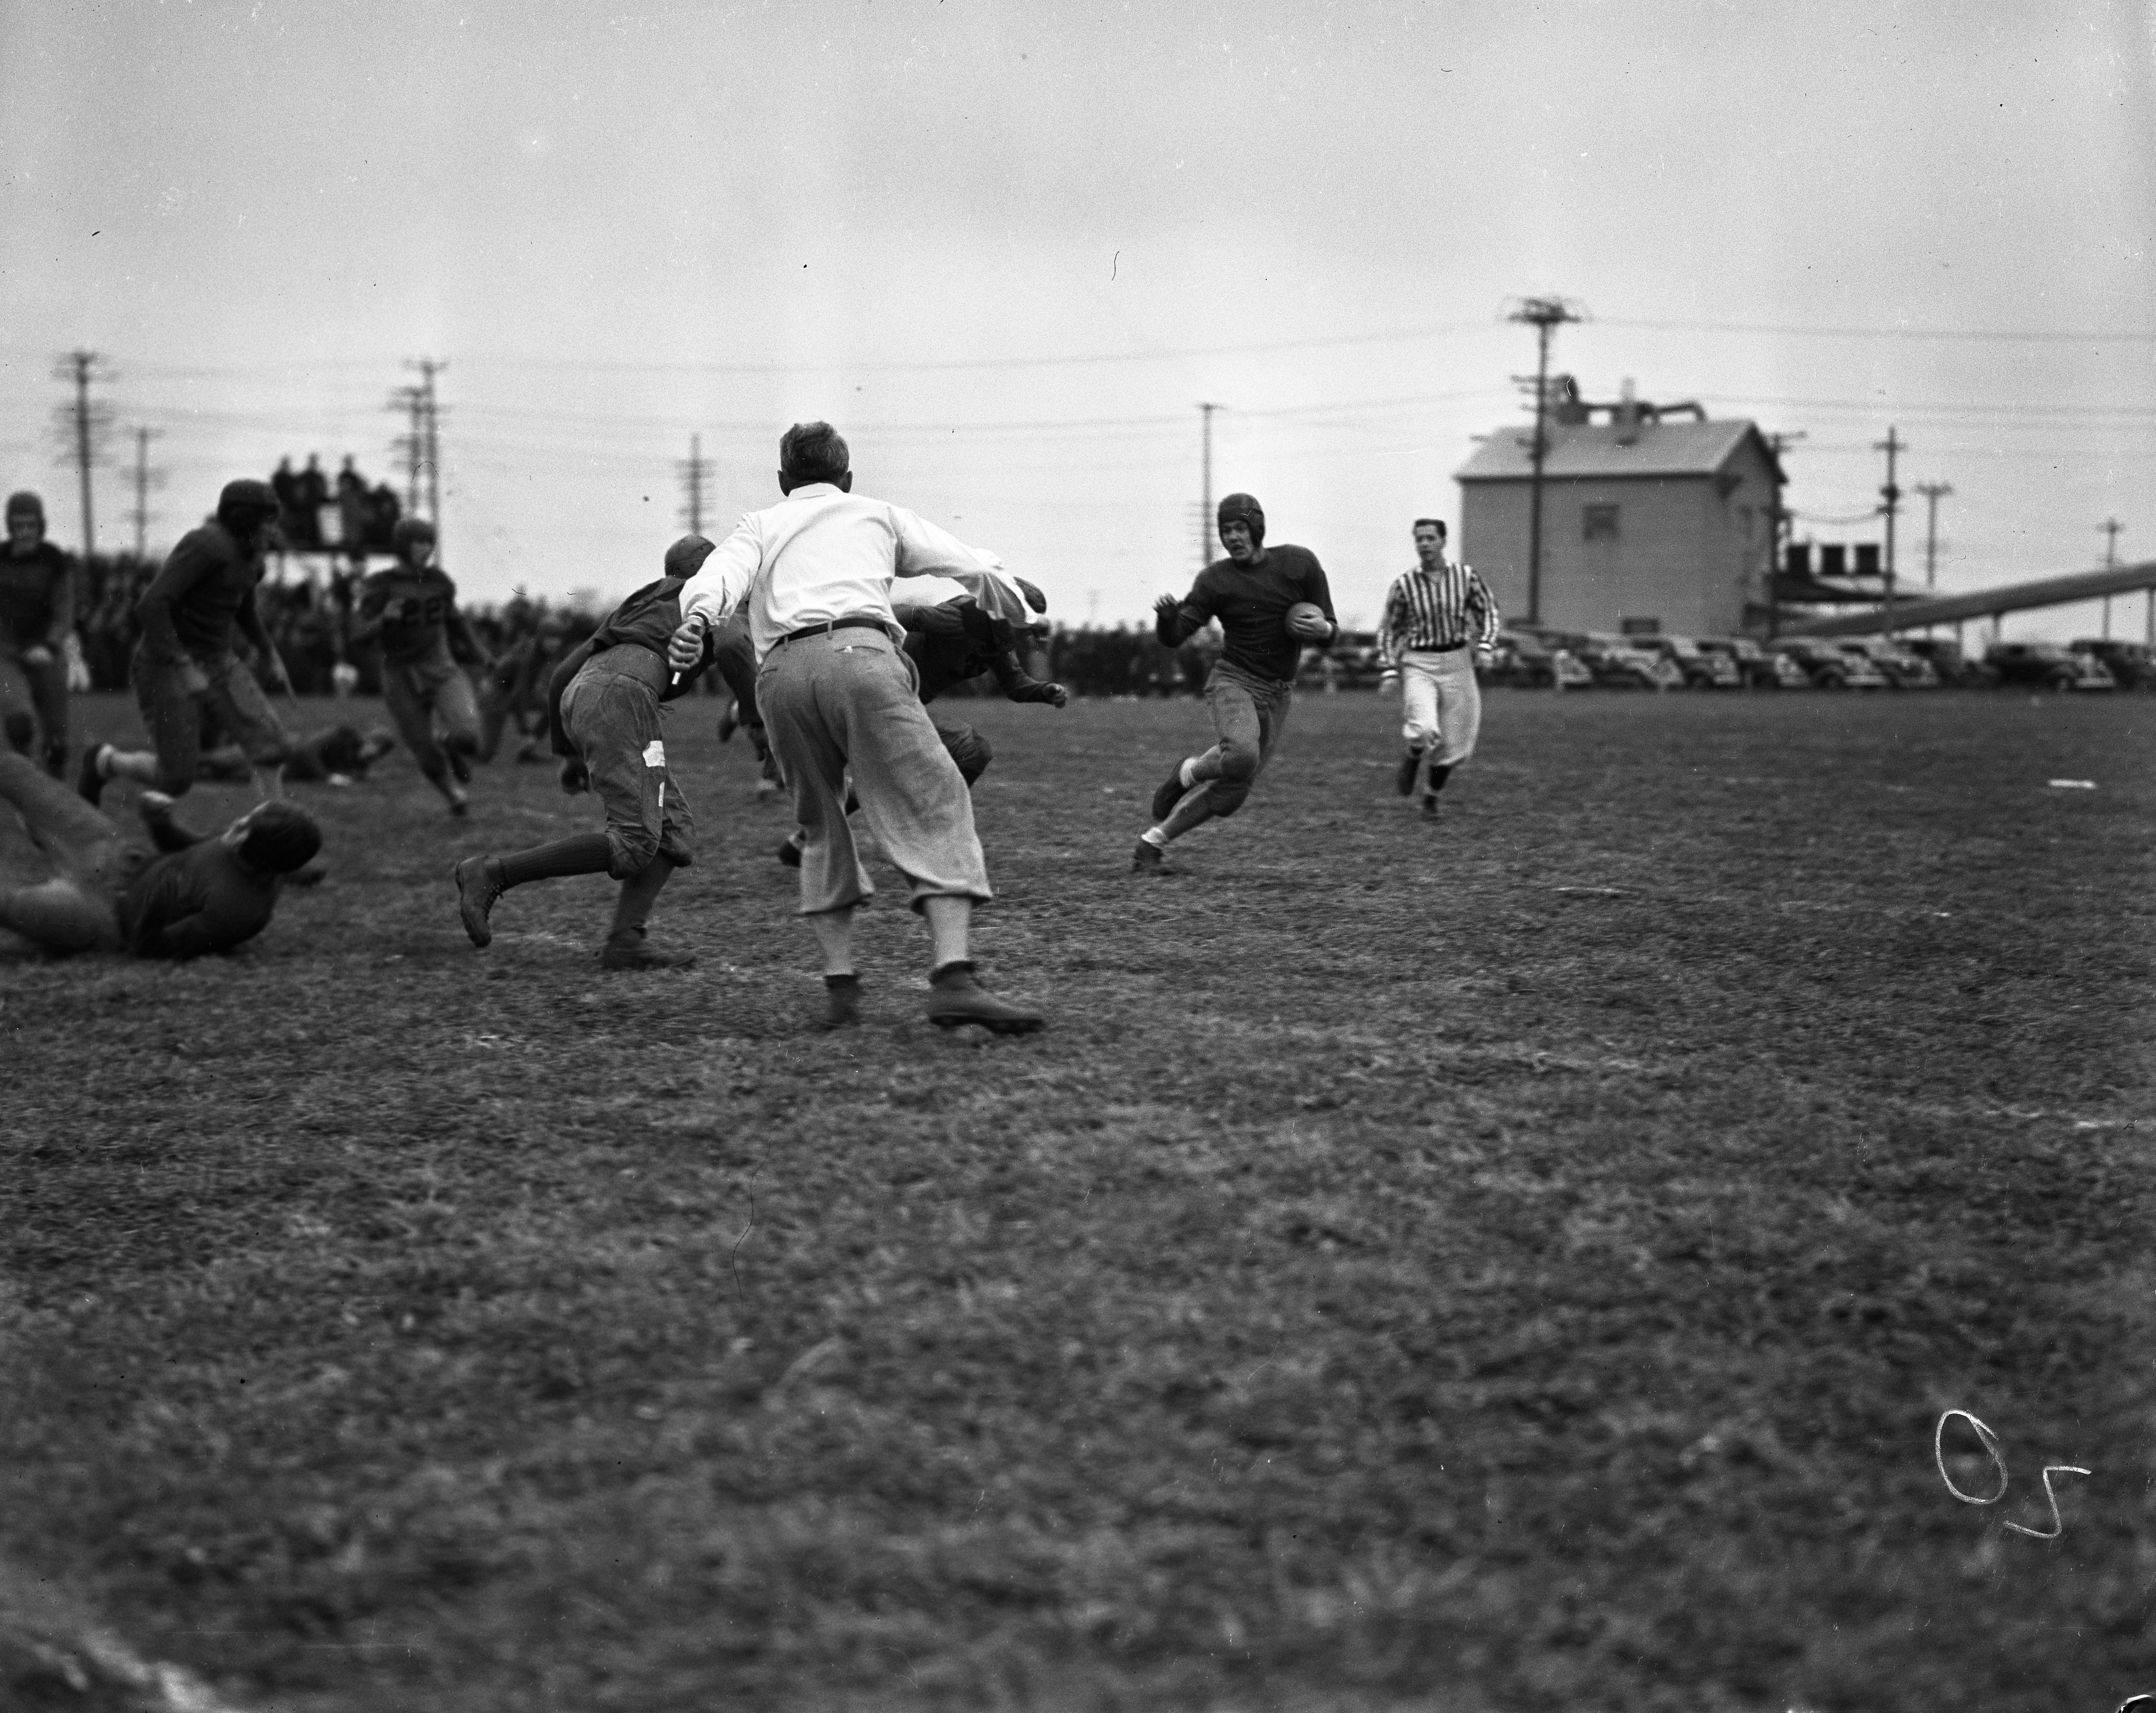 Dundee High School vs. Milan High School, November 1937 image